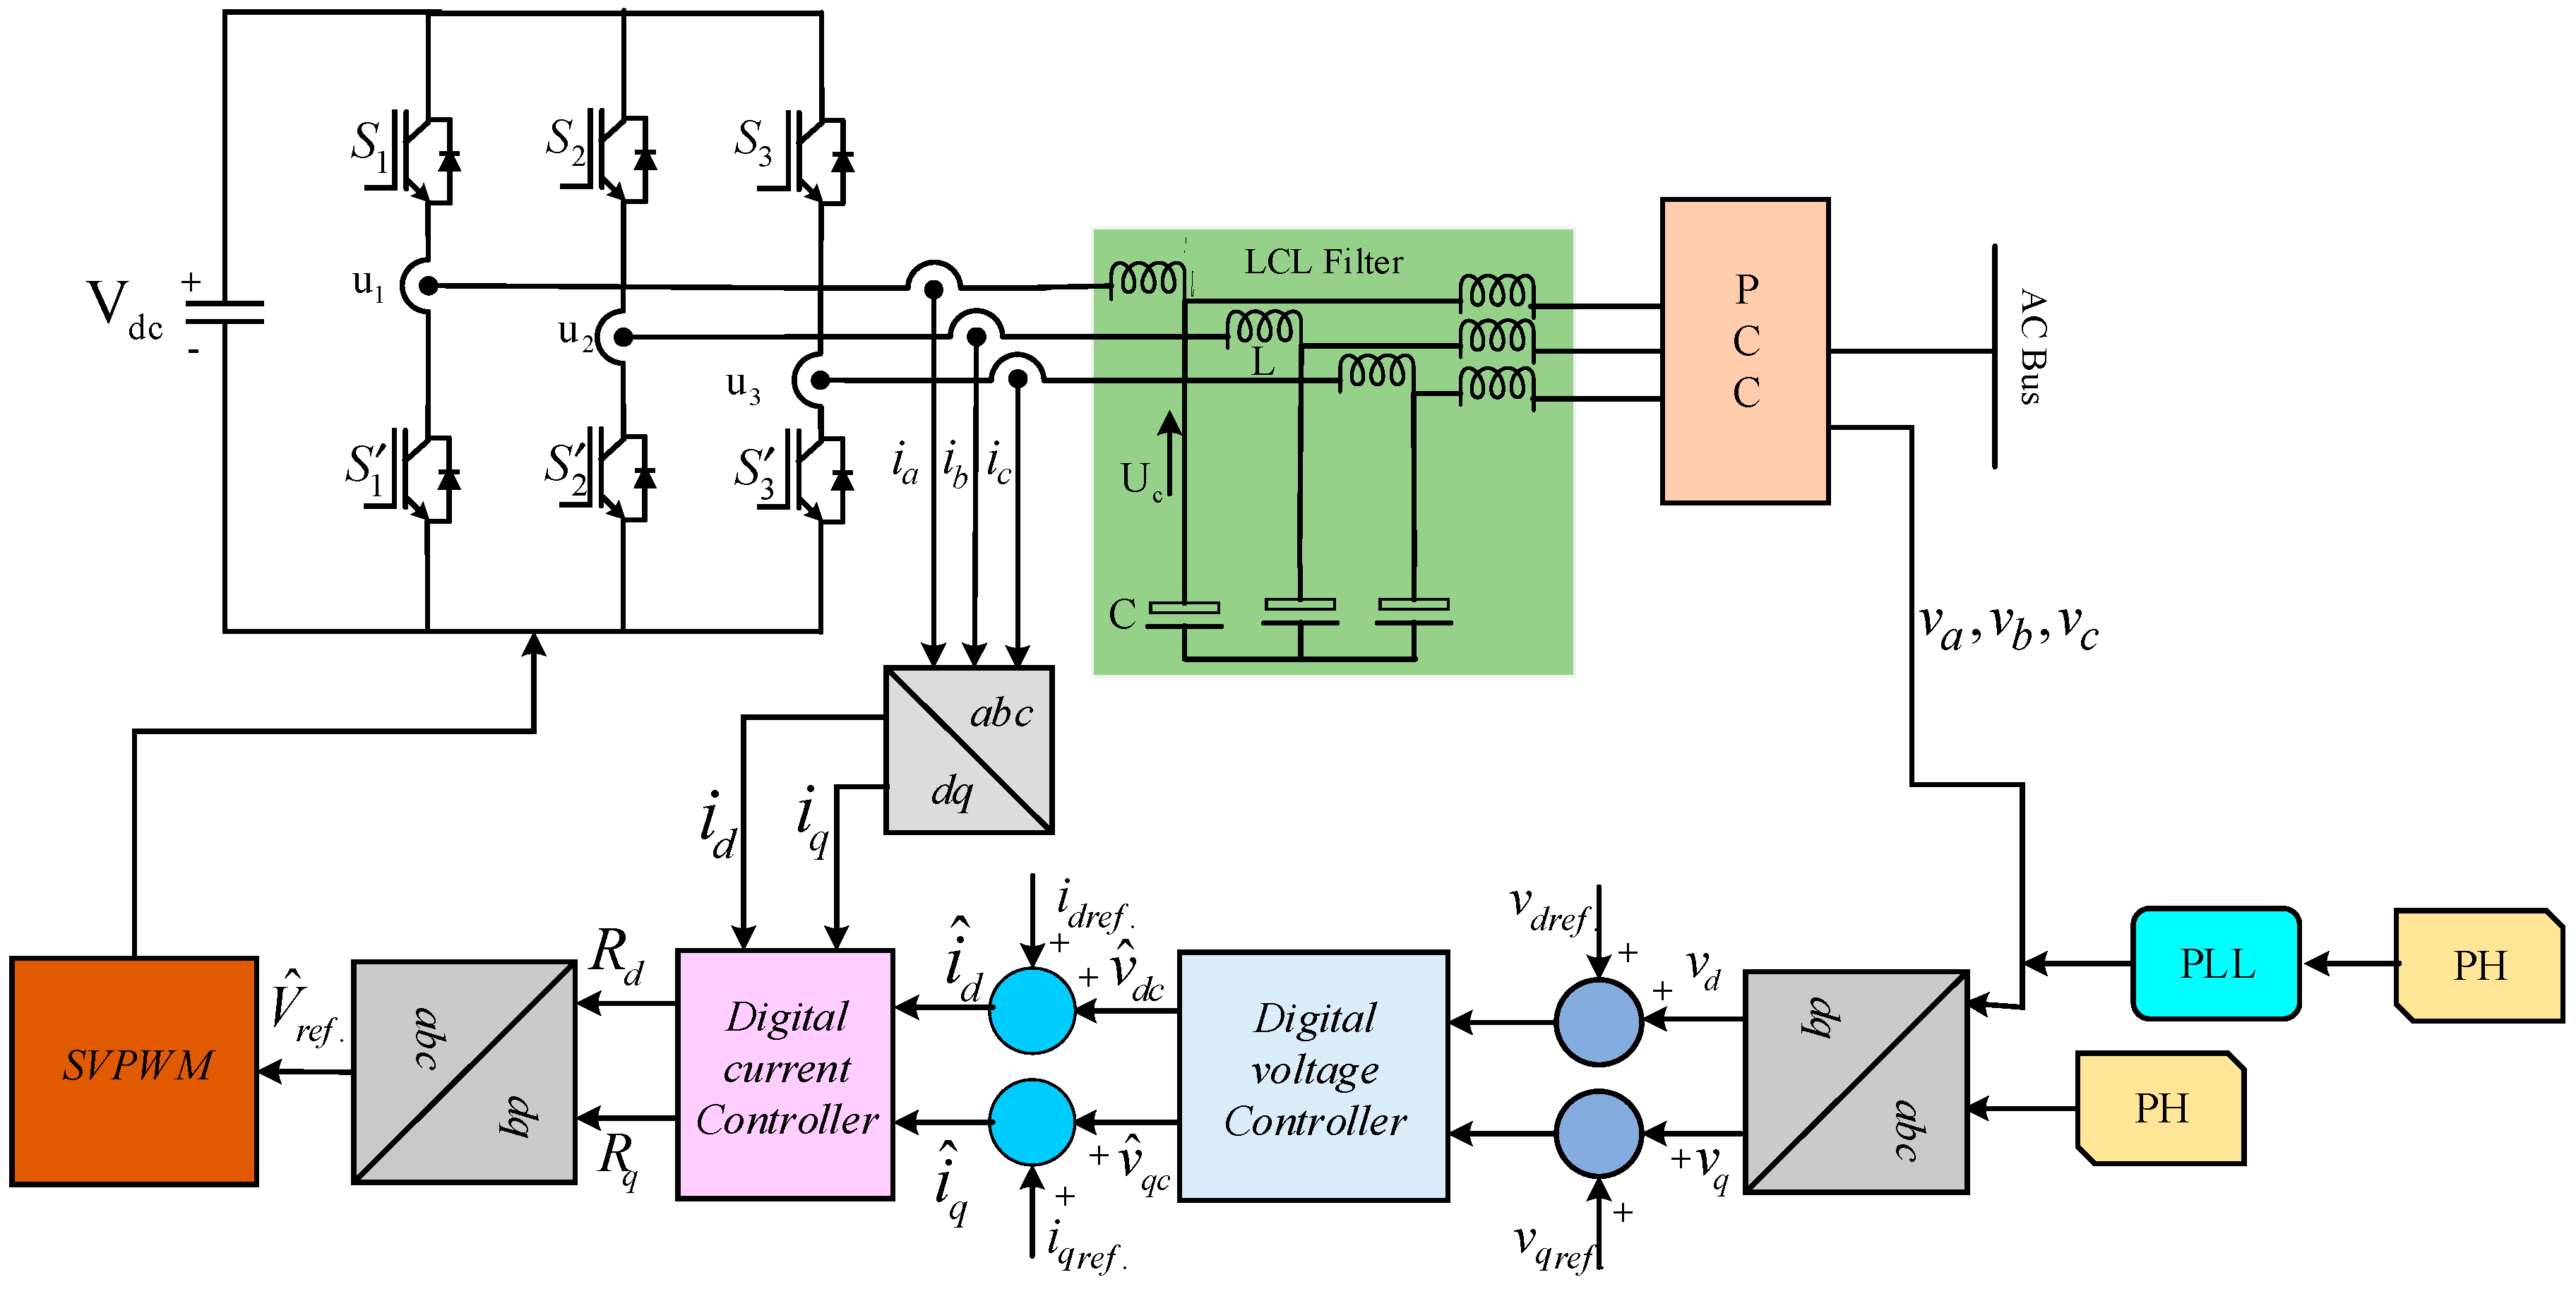 Circuit Diagram Furthermore Variable Frequency Drive Electronics Free Full Text Digital Control Techniques Based On 07 00018 G010 Figure 10 Schematic